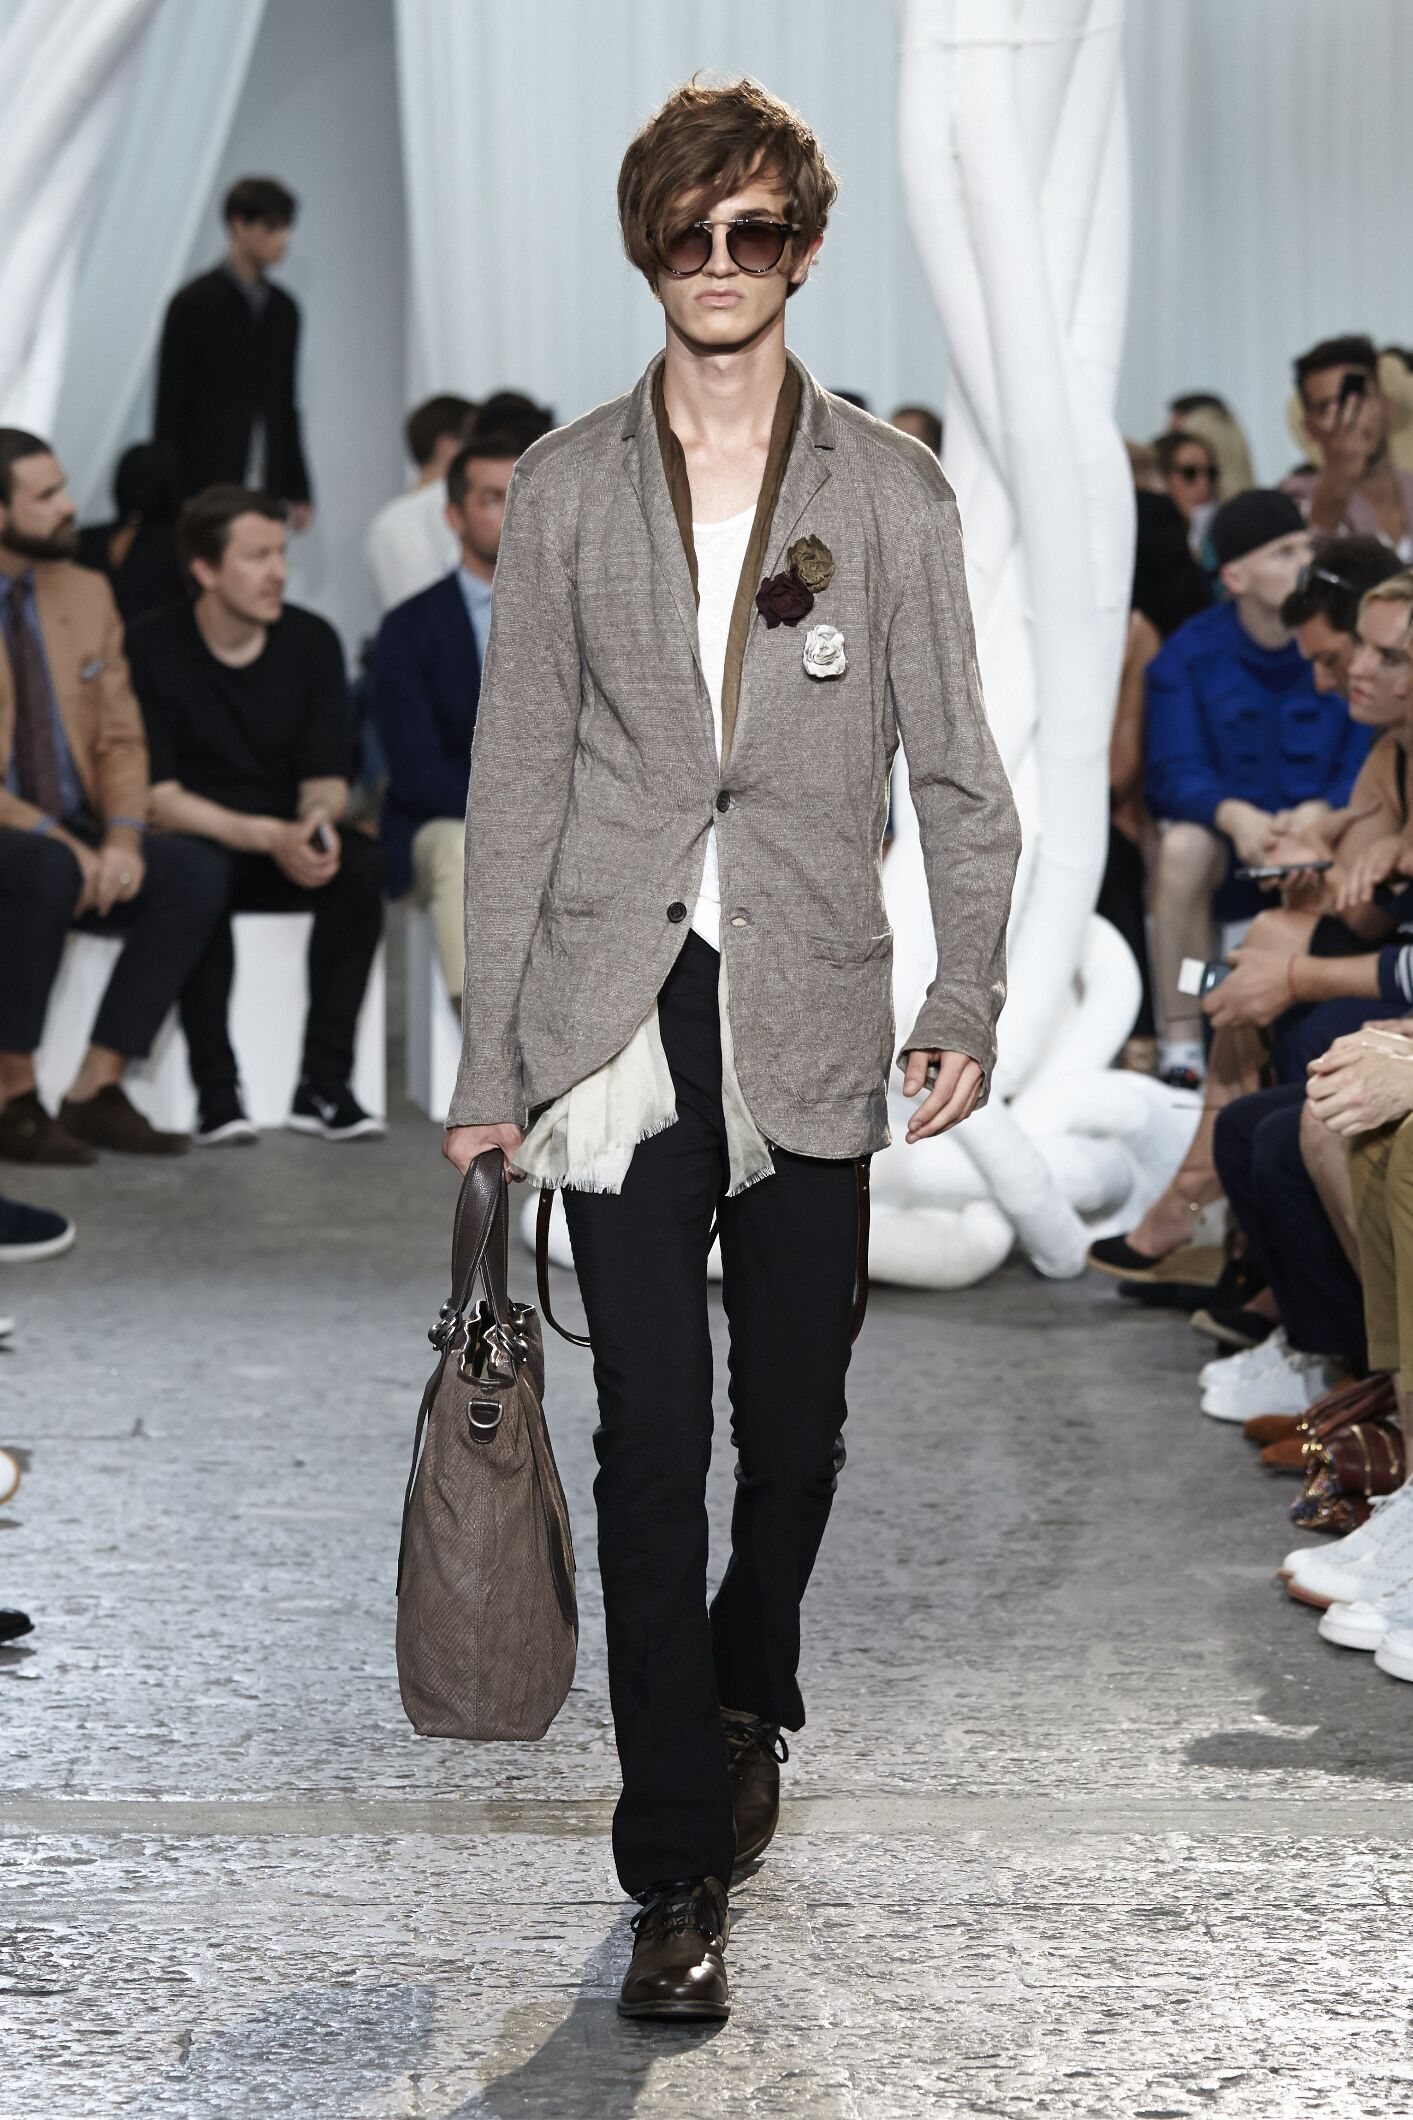 John Varvatos Men's Collection 2015